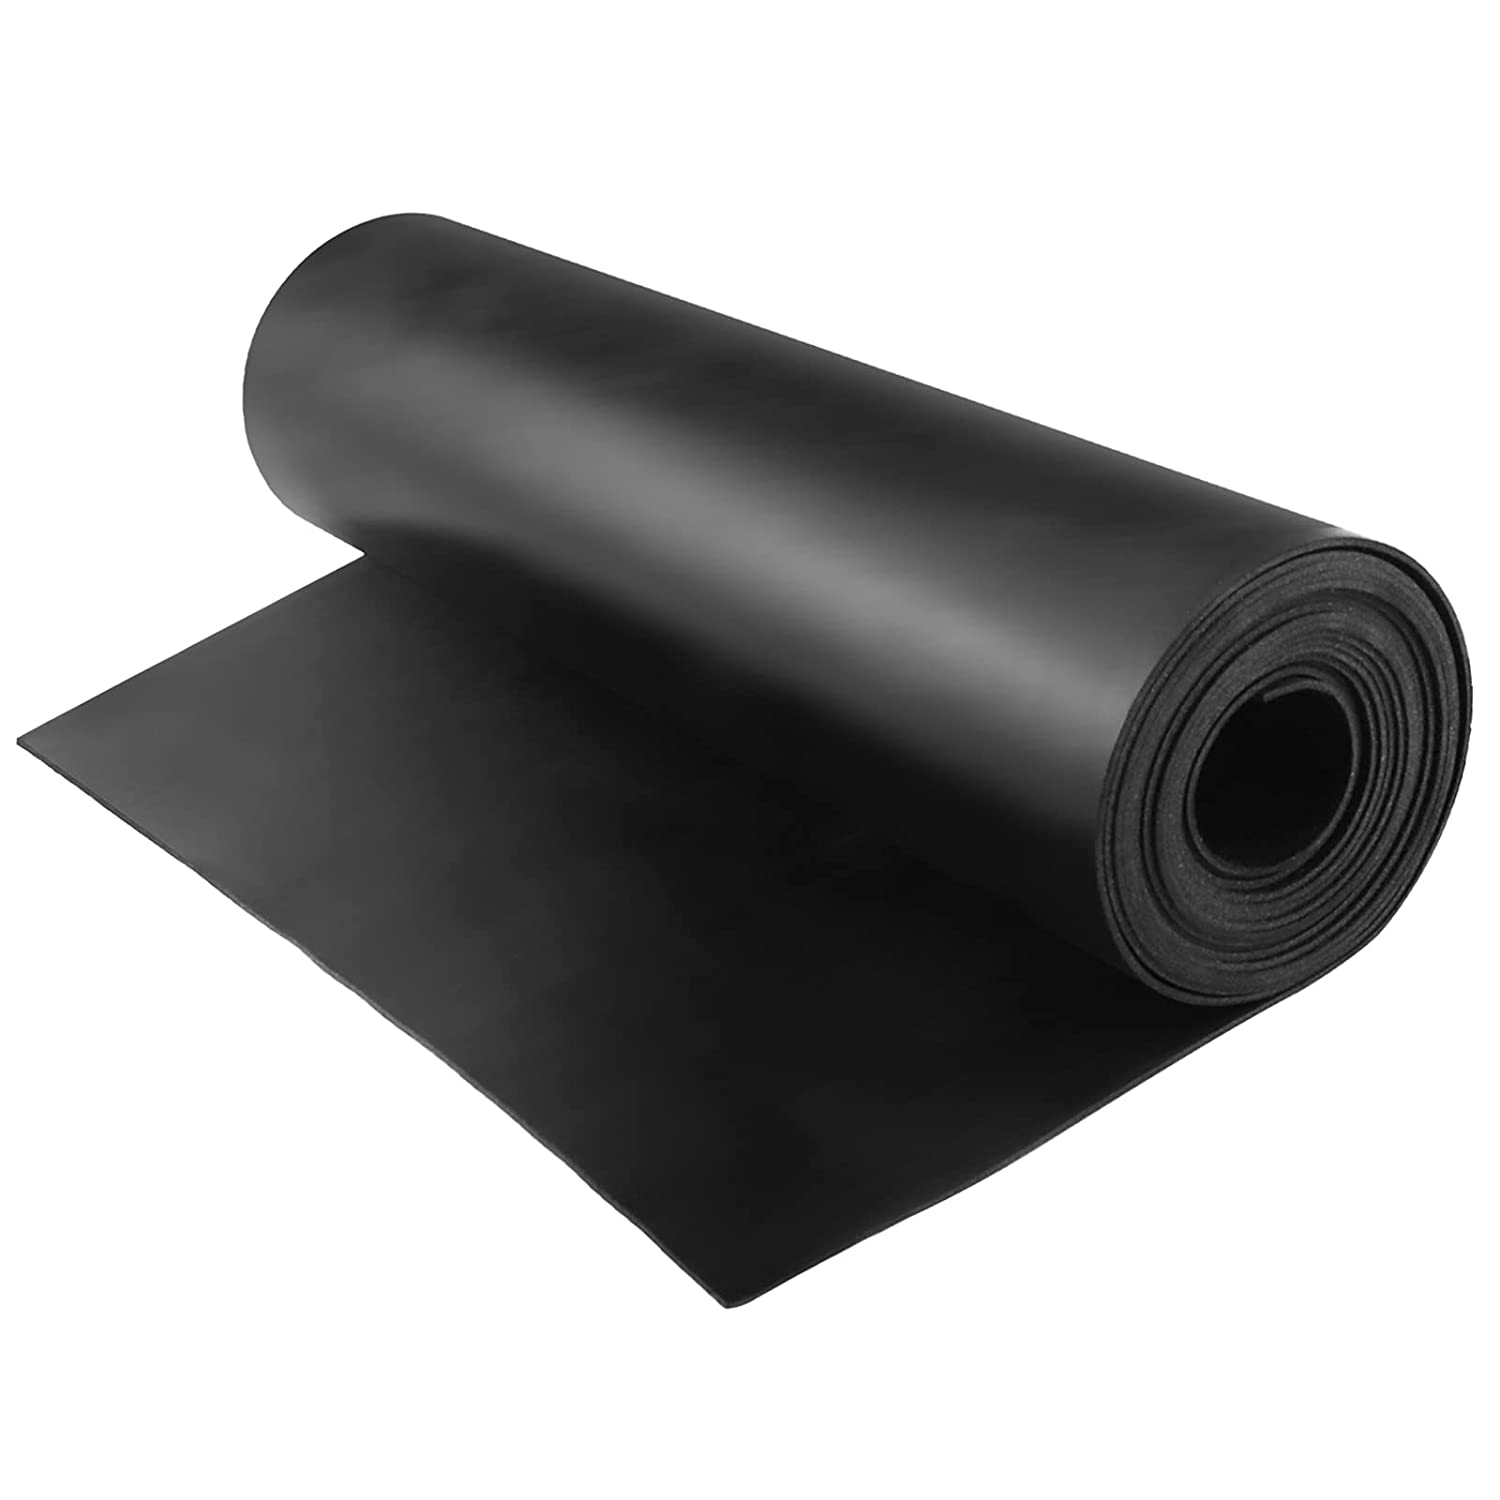 Neoprene Rubber Strips Sheets Rolls Our shop OFFers the best service for free shipping Solid Crafts Pad